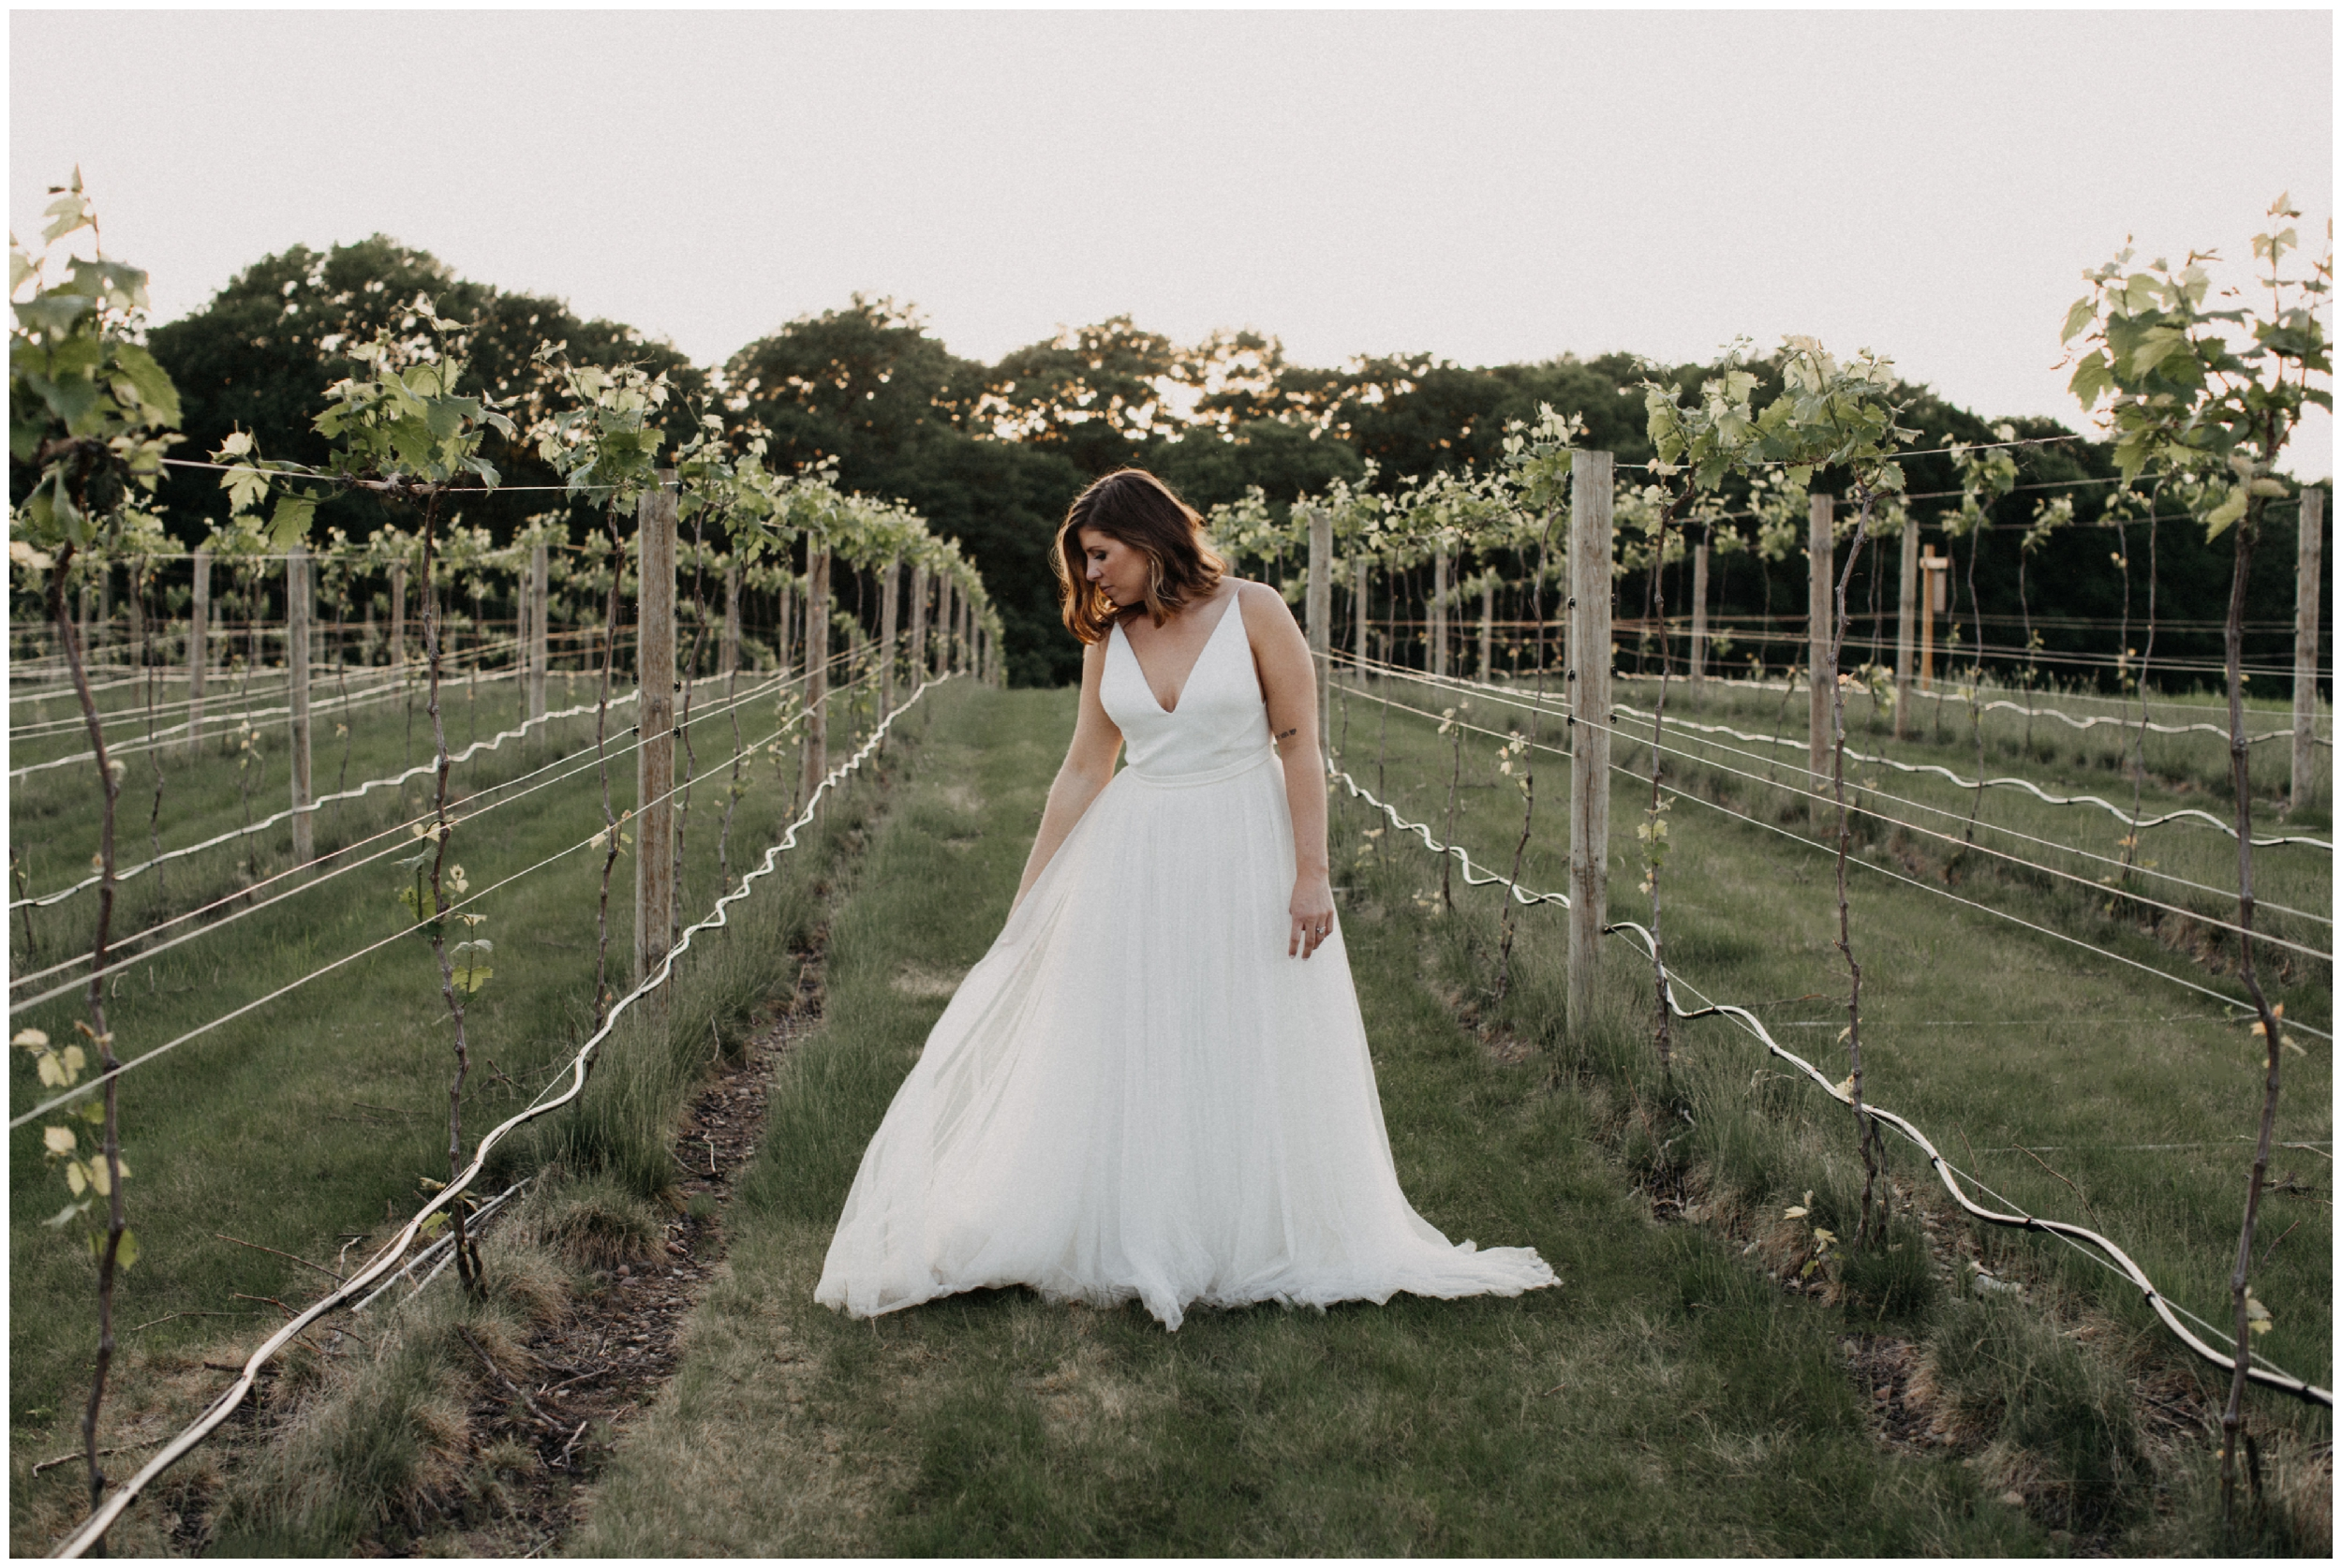 Bride posing in vineyard at 7 vines winery